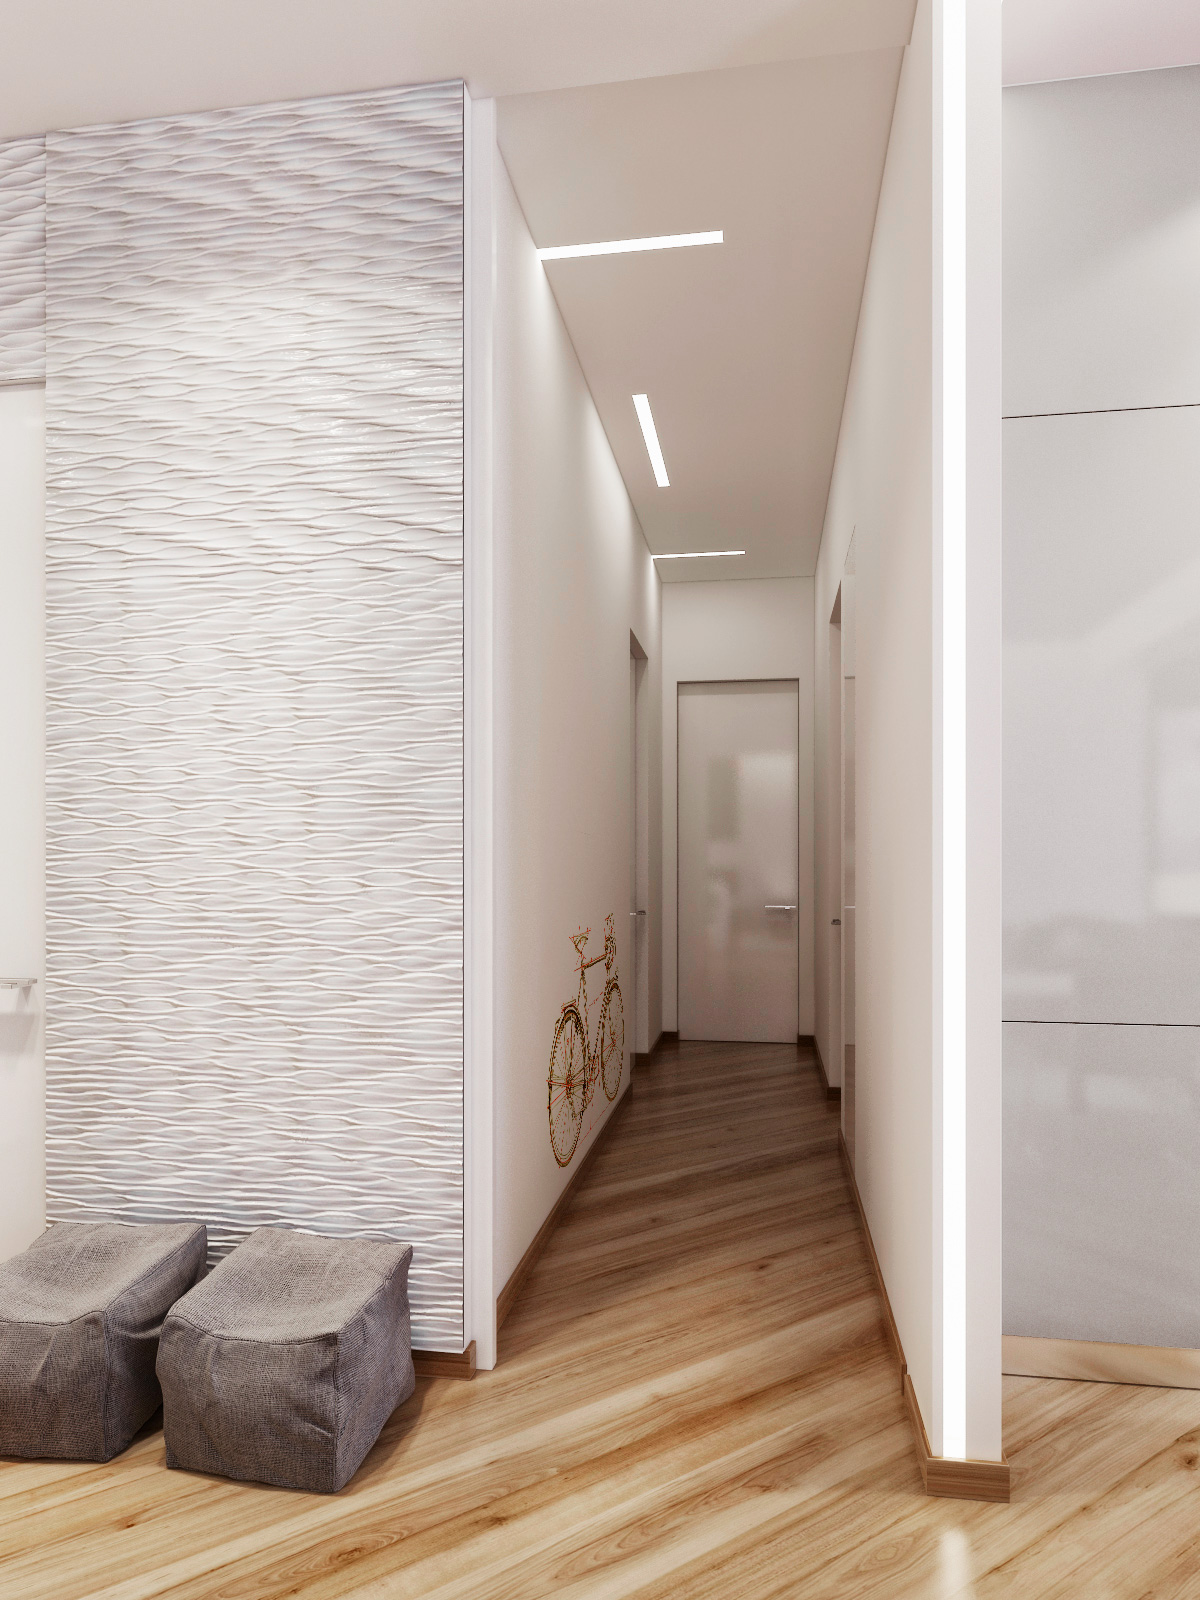 Modern corridor interior design ideas - Decor corridor ...